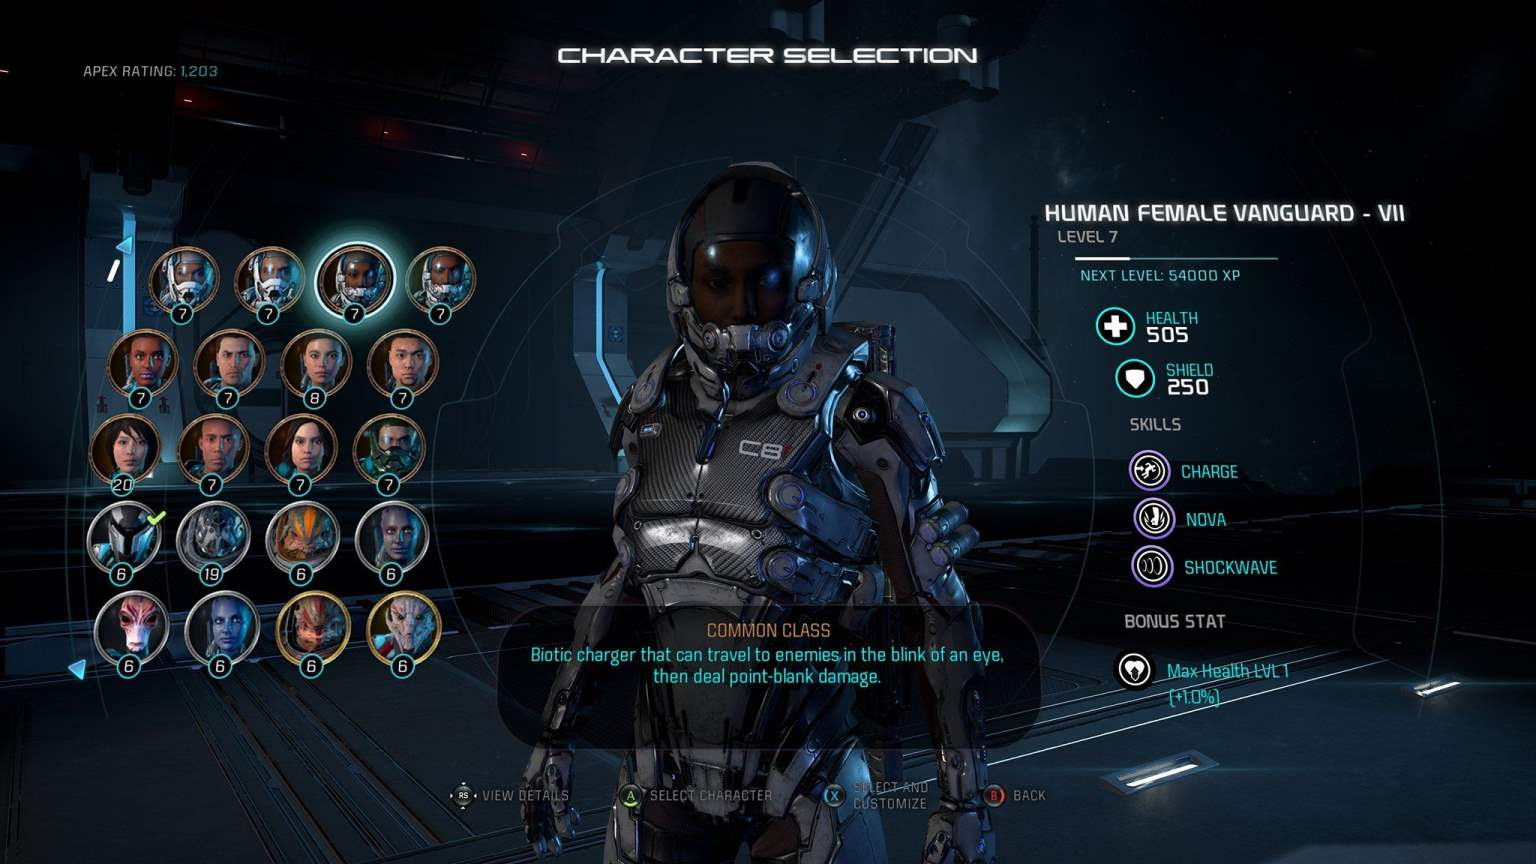 Exploration will have consequences in Mass Effect: Andromeda